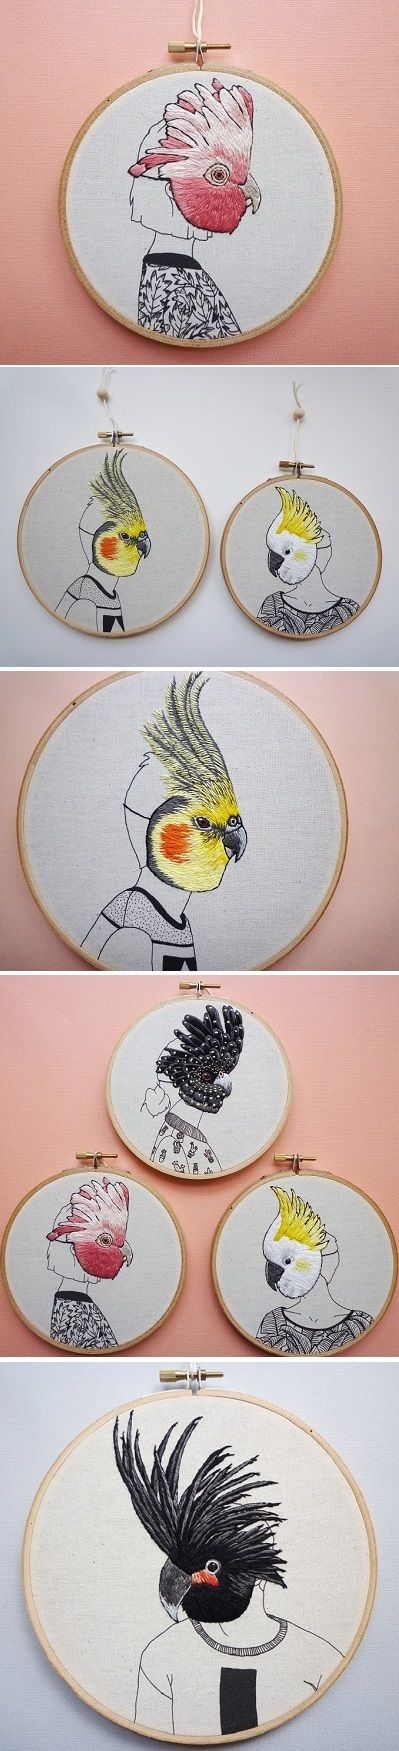 Embroidery by Amy Jones / on the Blog!